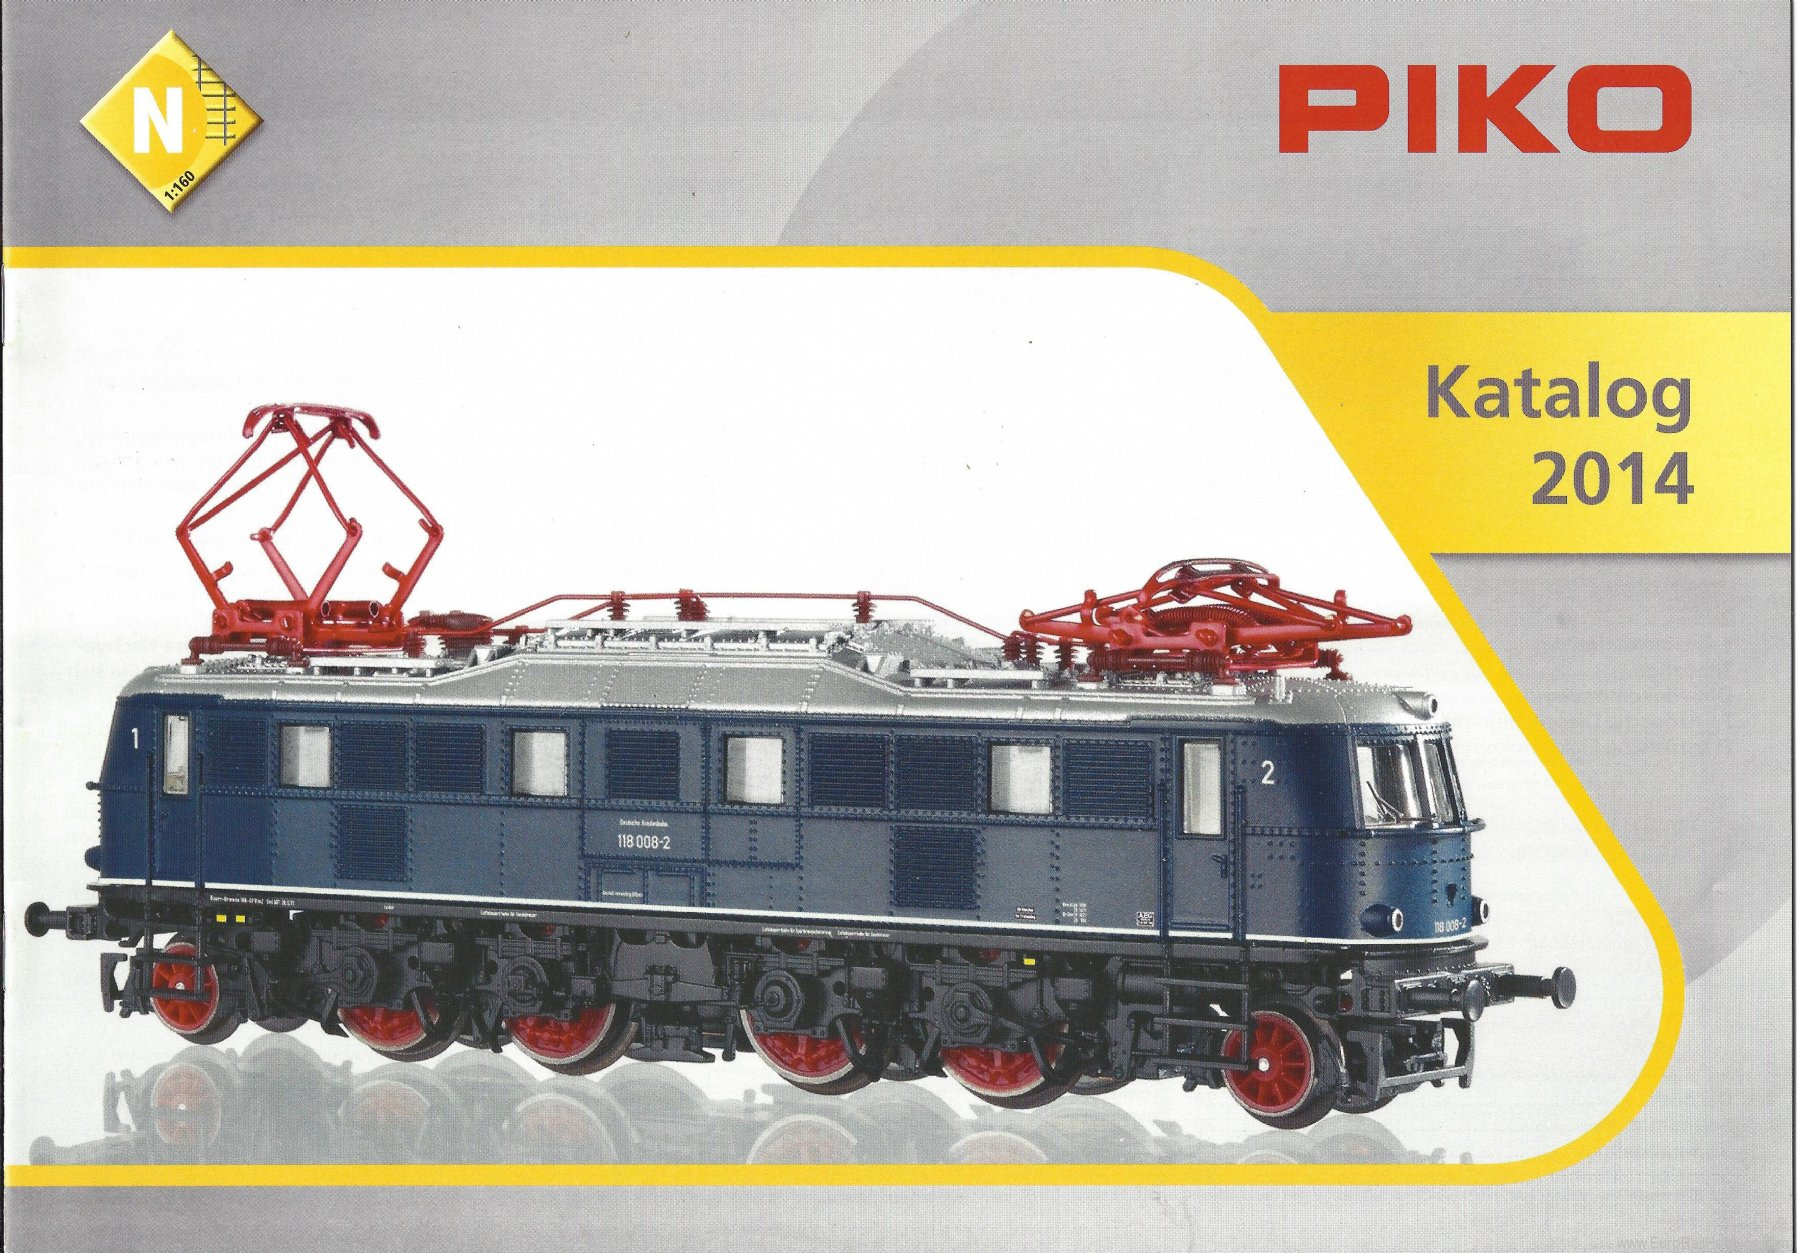 Piko 99694 2014 Piko N Scale  English Catalog